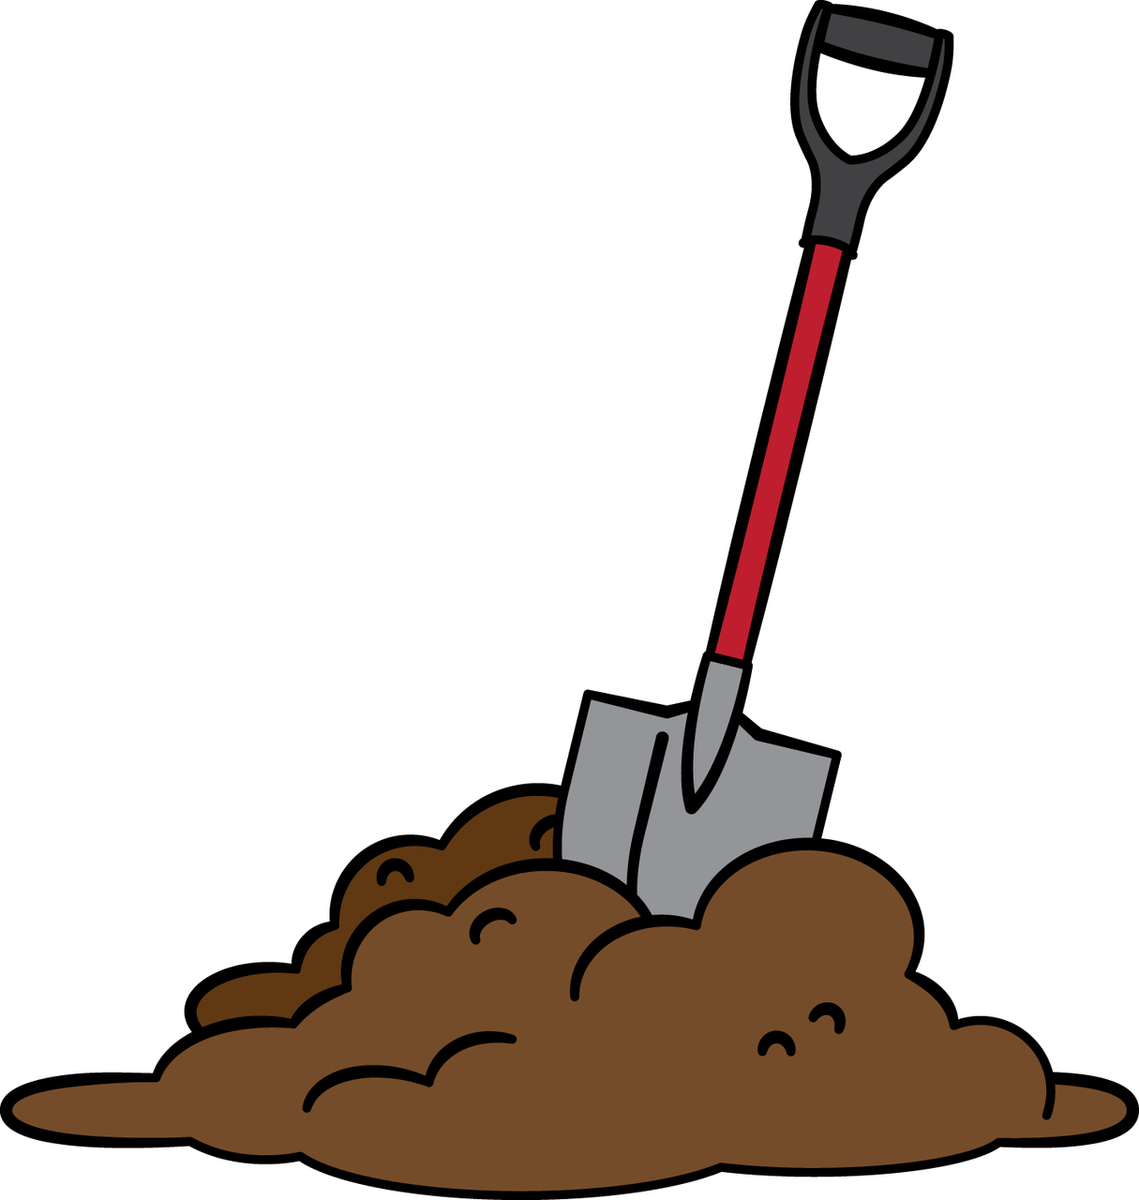 png royalty free download Shovel free on dumielauxepices. Dirt clipart.